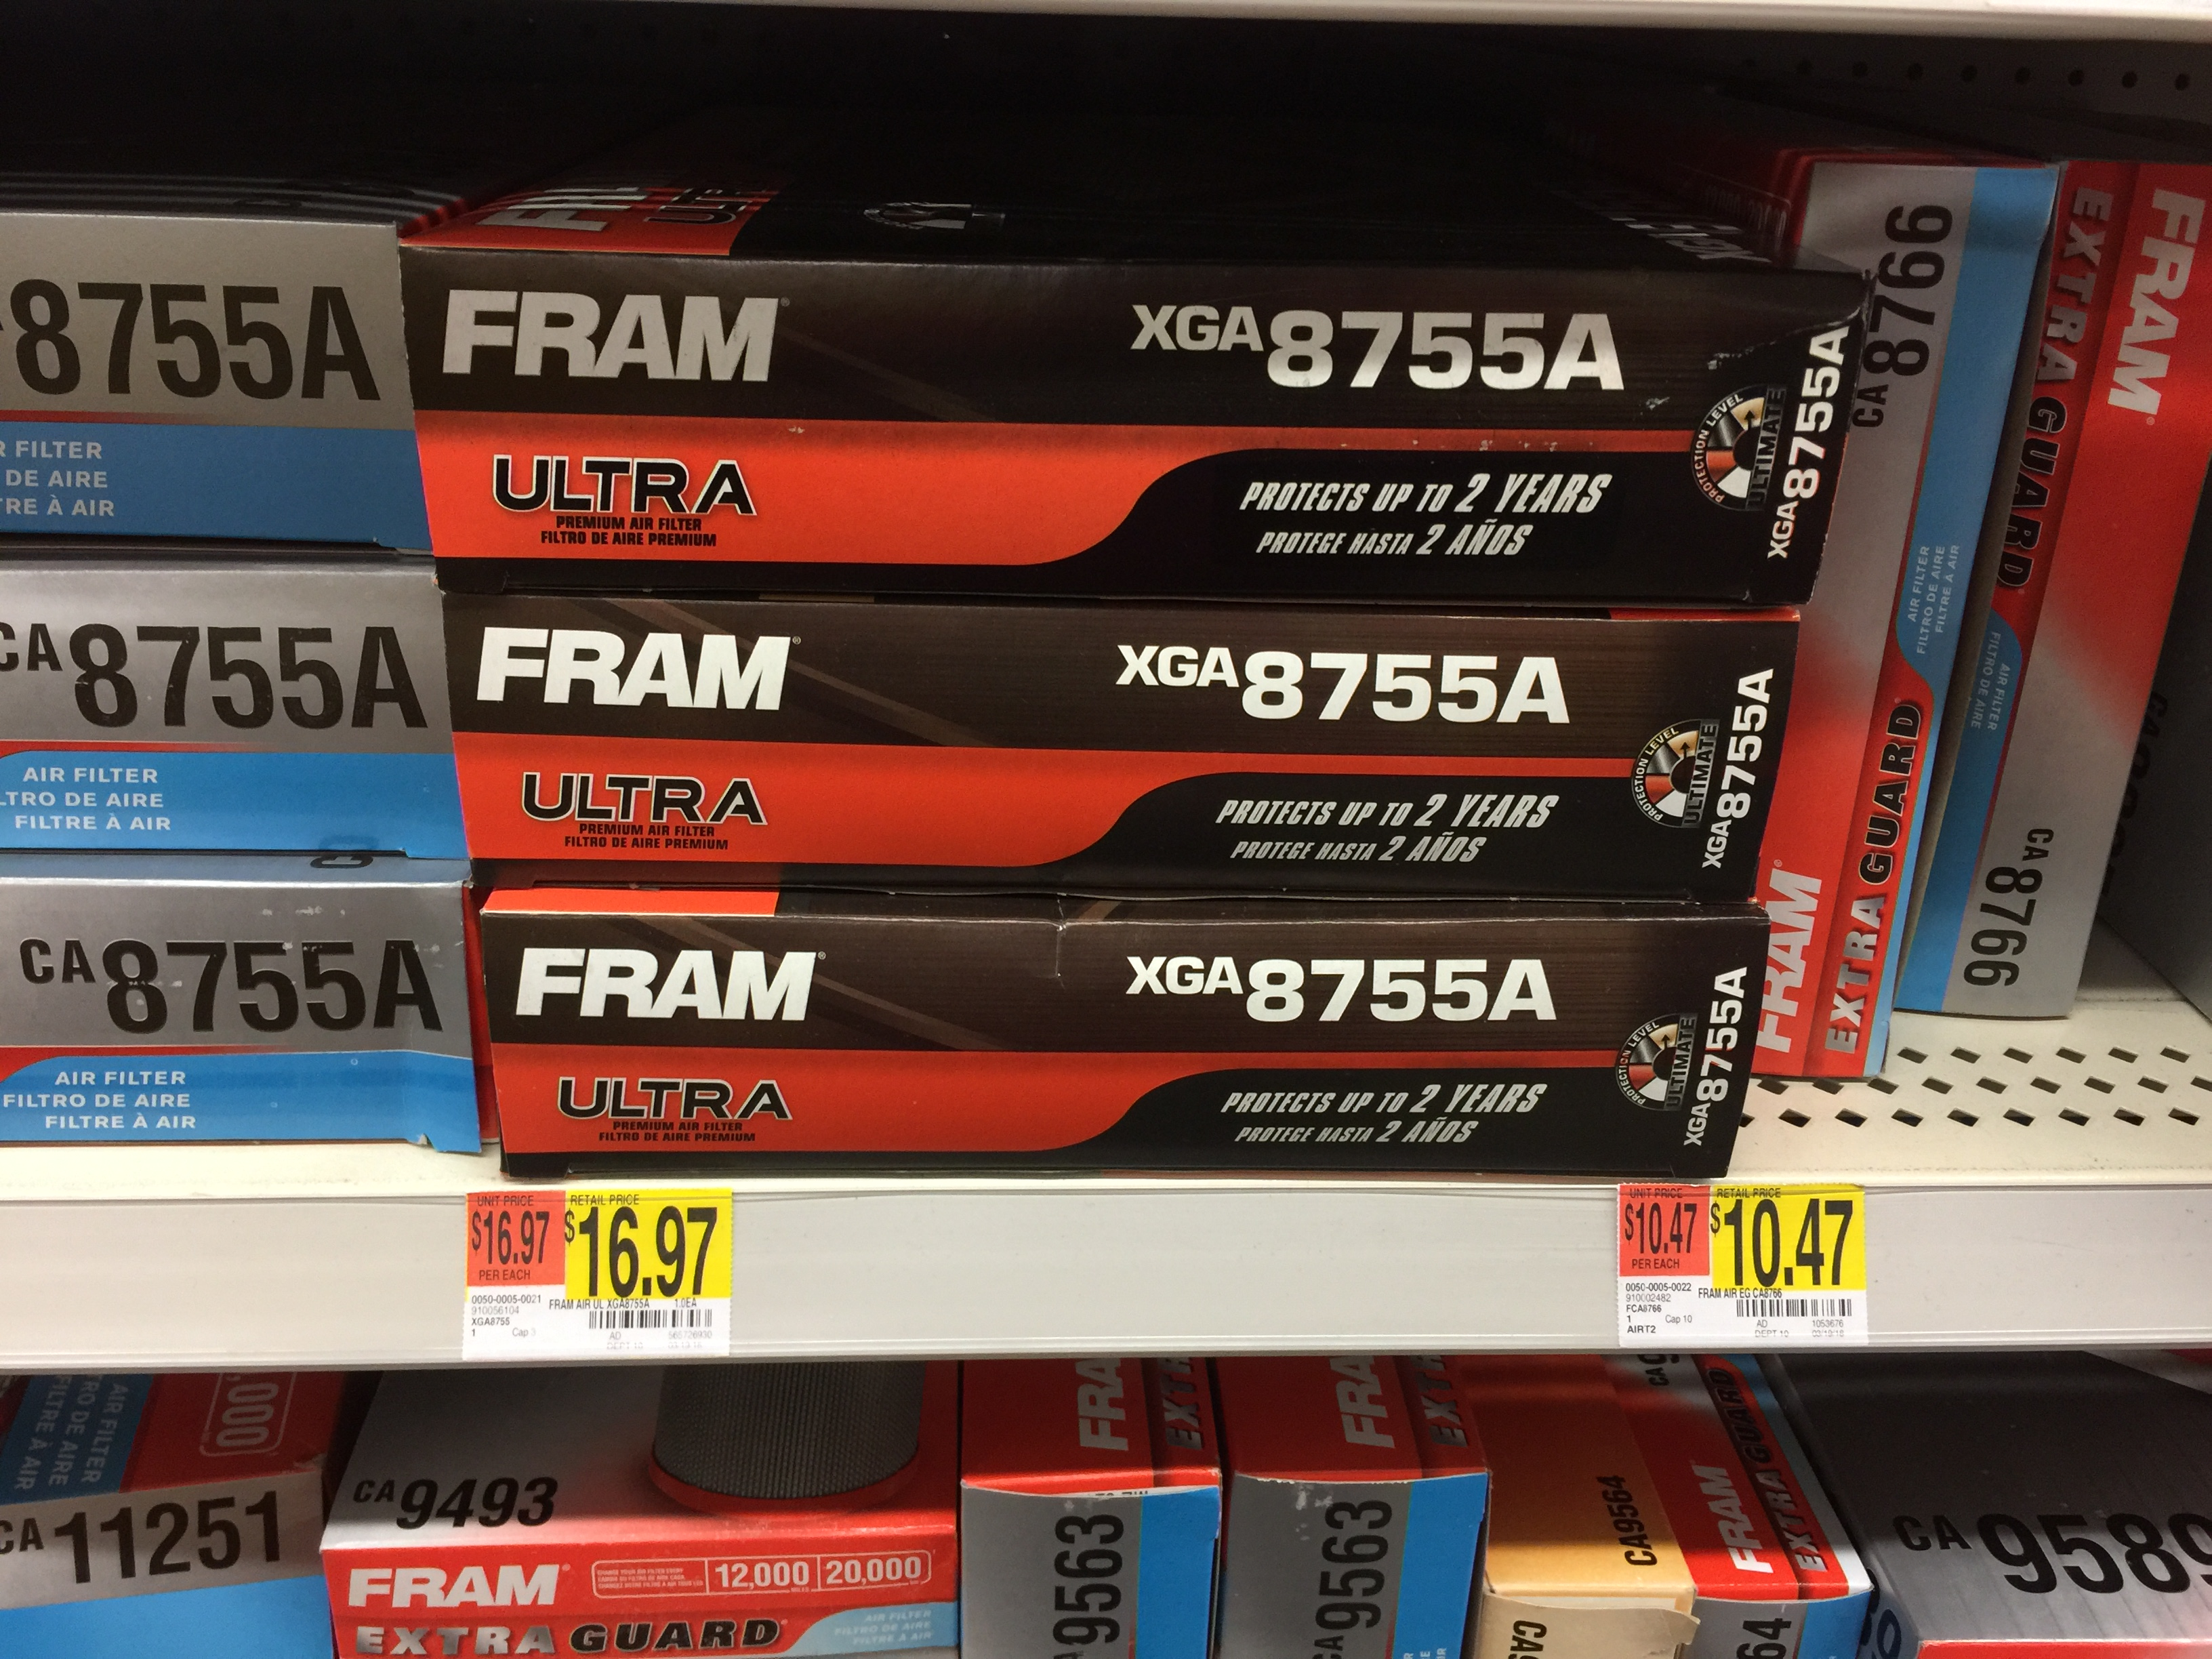 Did Fram do away with the Tough Guard air filters & replace them with the  Ultras? $16.00 for a Ultra is a good buy if they re better than the Tough  Guards.